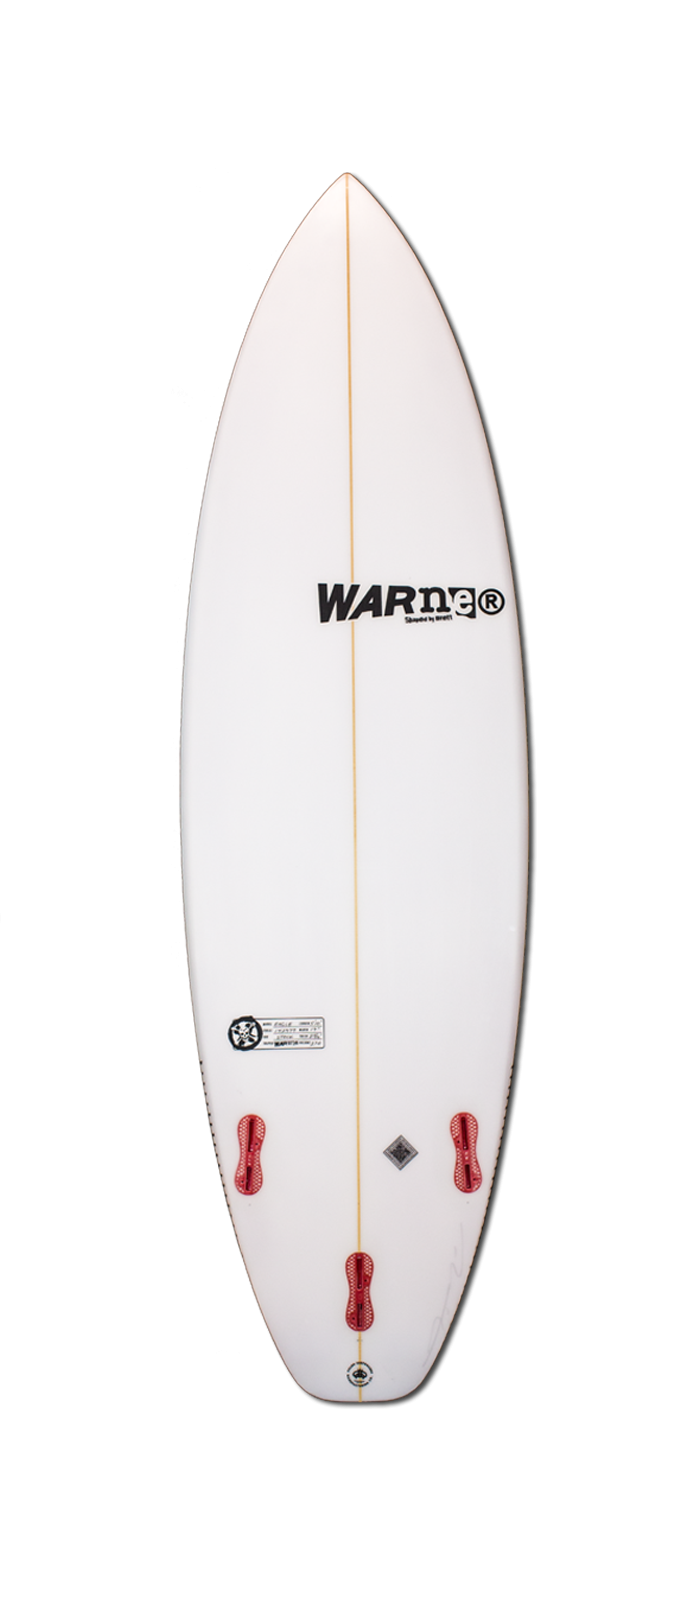 SEA EAGLE surfboard model bottom